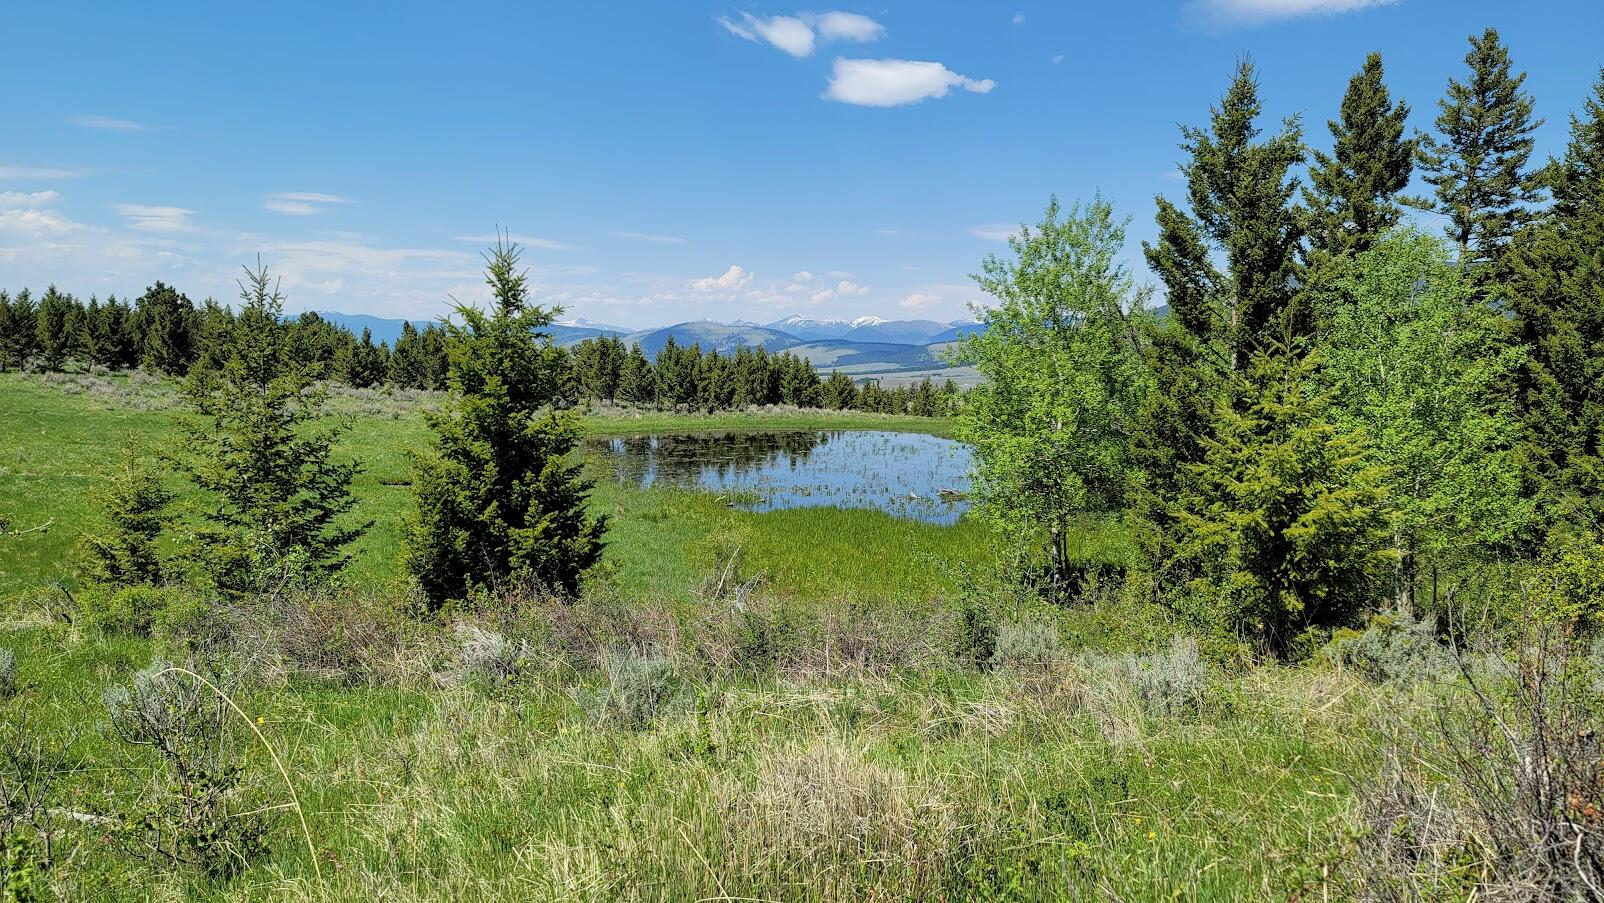 Springs, Ponds, Beautiful Views that Overlook Helmville area, Building Sites, Private, Good Access Roads, End of Road LotCall Dan & Cortney Senecal at 406-439-5414, or your real estate professional.